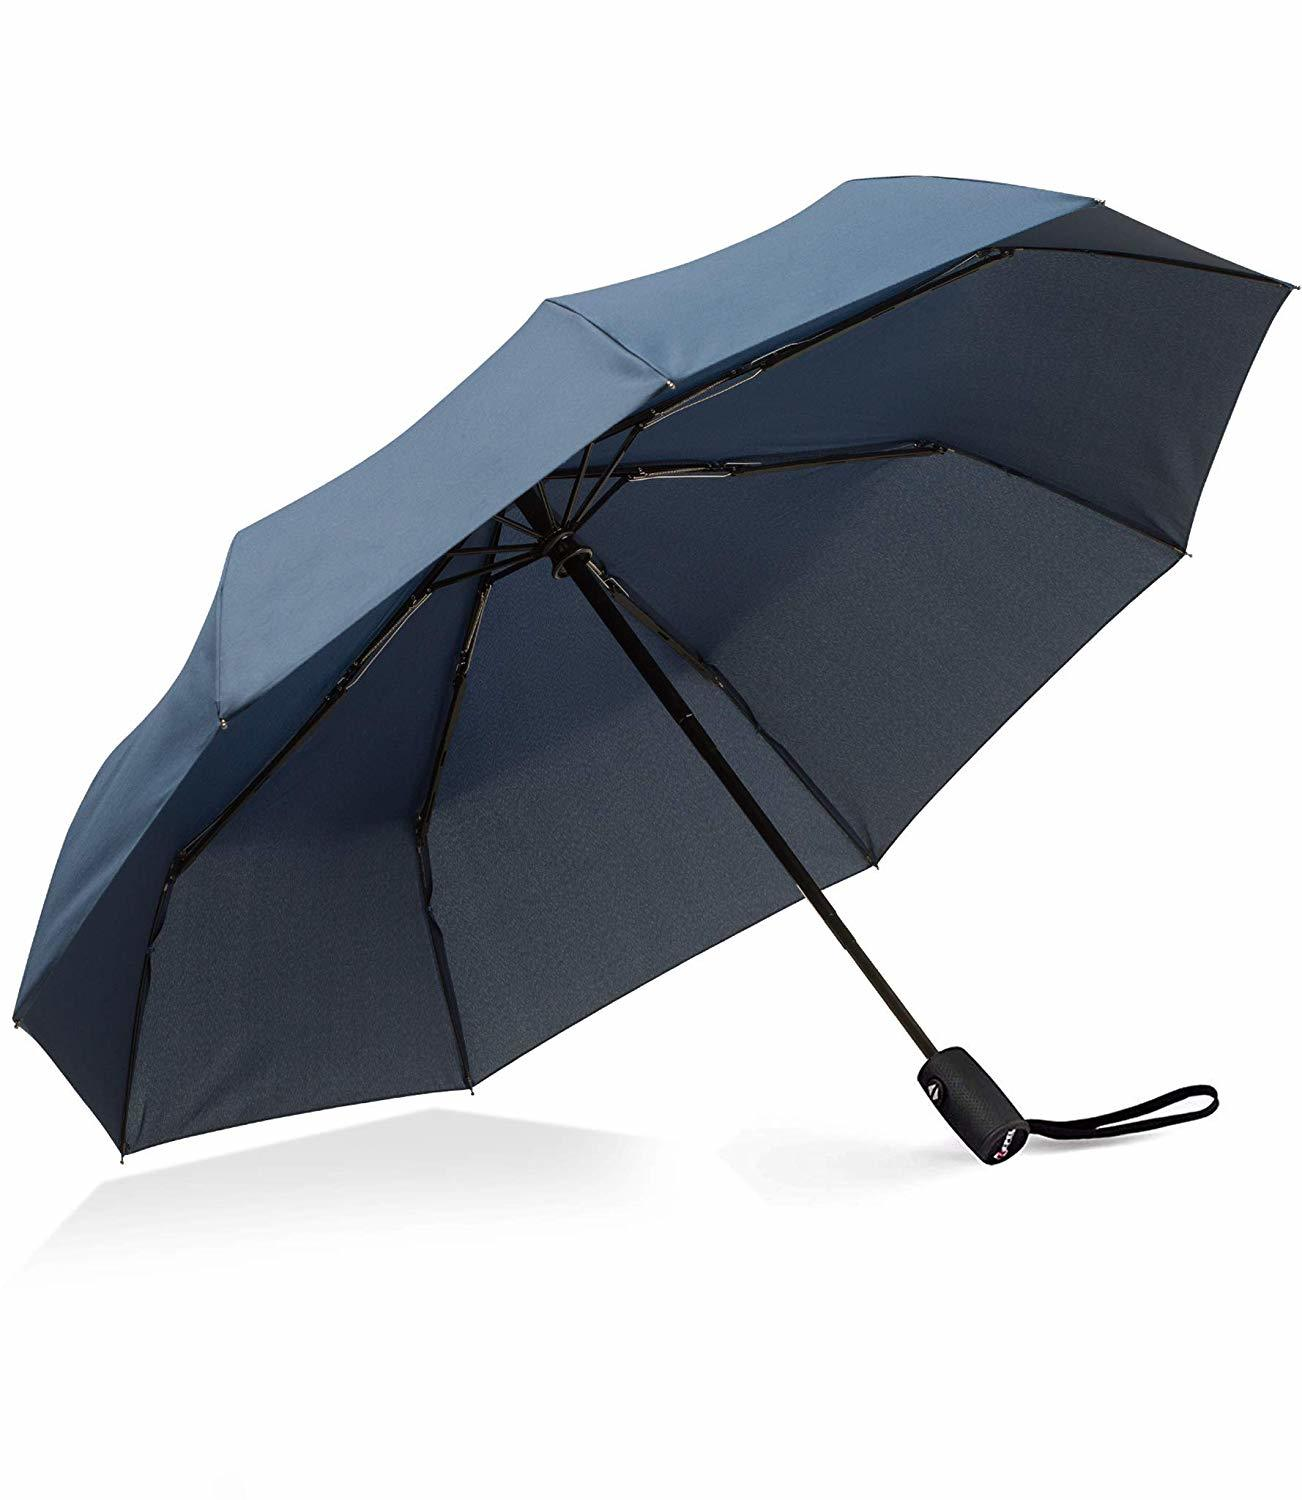 Repel Windproof Umbrella w/ Teflon Coating